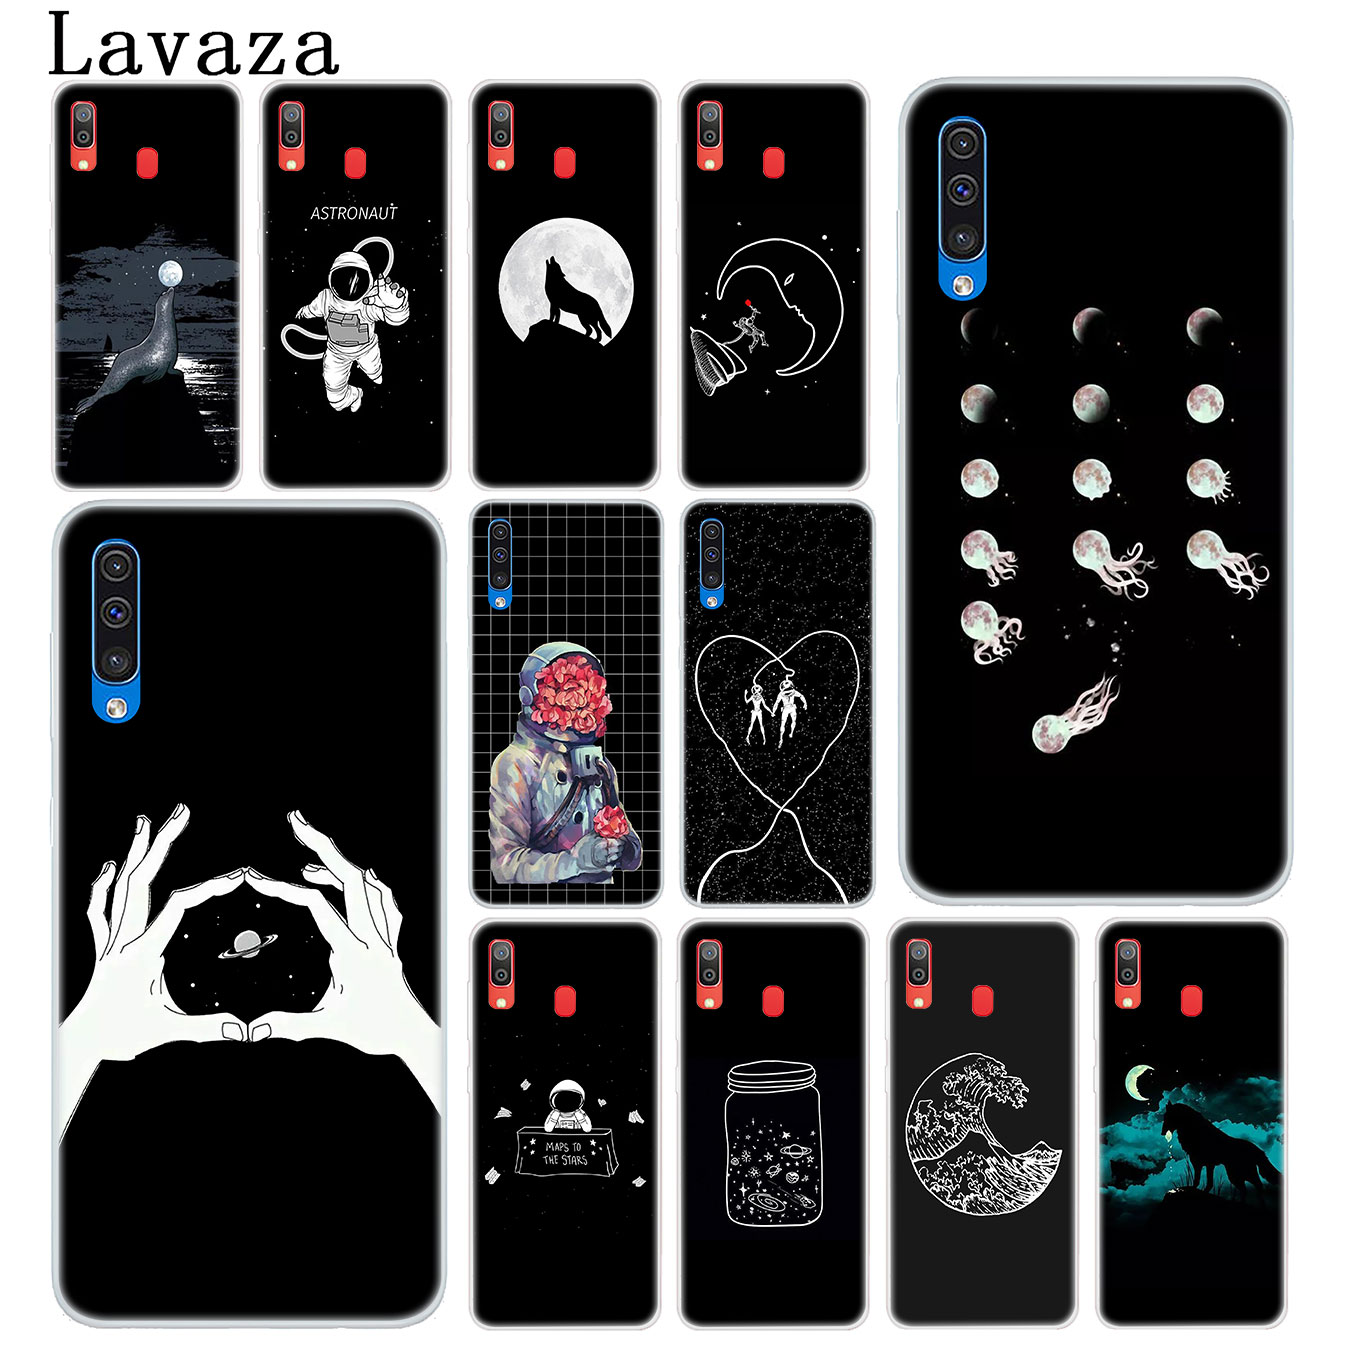 Half-wrapped Case Dependable Lavaza Black With White Moon Stars Space Astronaut Hard Phone Case For Samsung Galaxy A10 A30 A40 A50 A70 M10 M20 M30 Cover To Rank First Among Similar Products